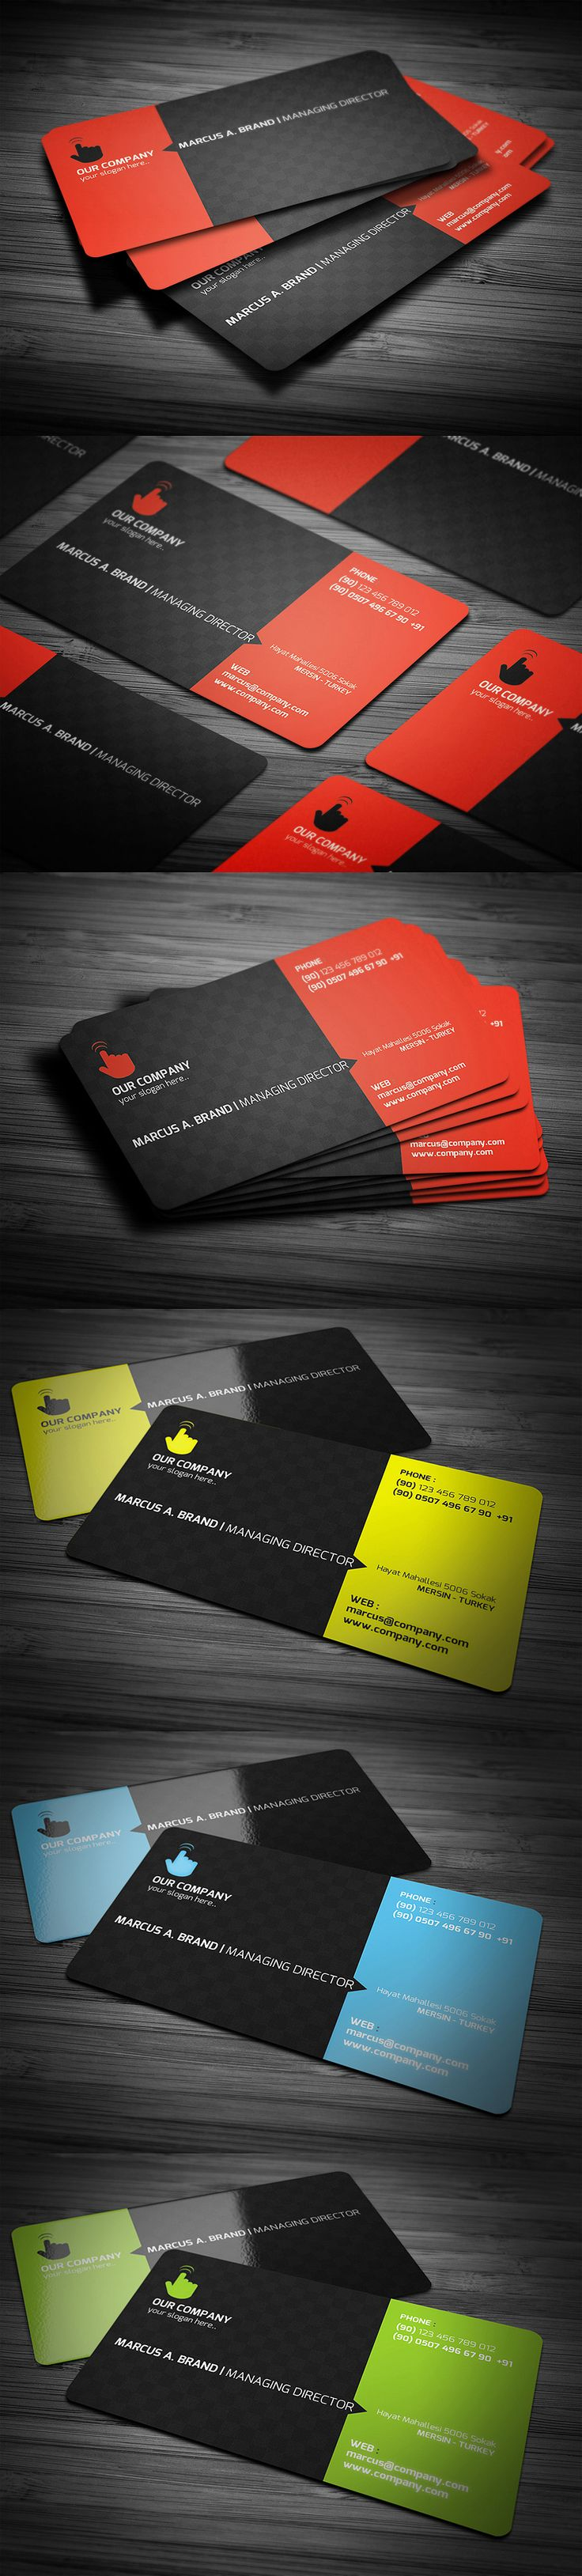 176 best business card designs images on pinterest